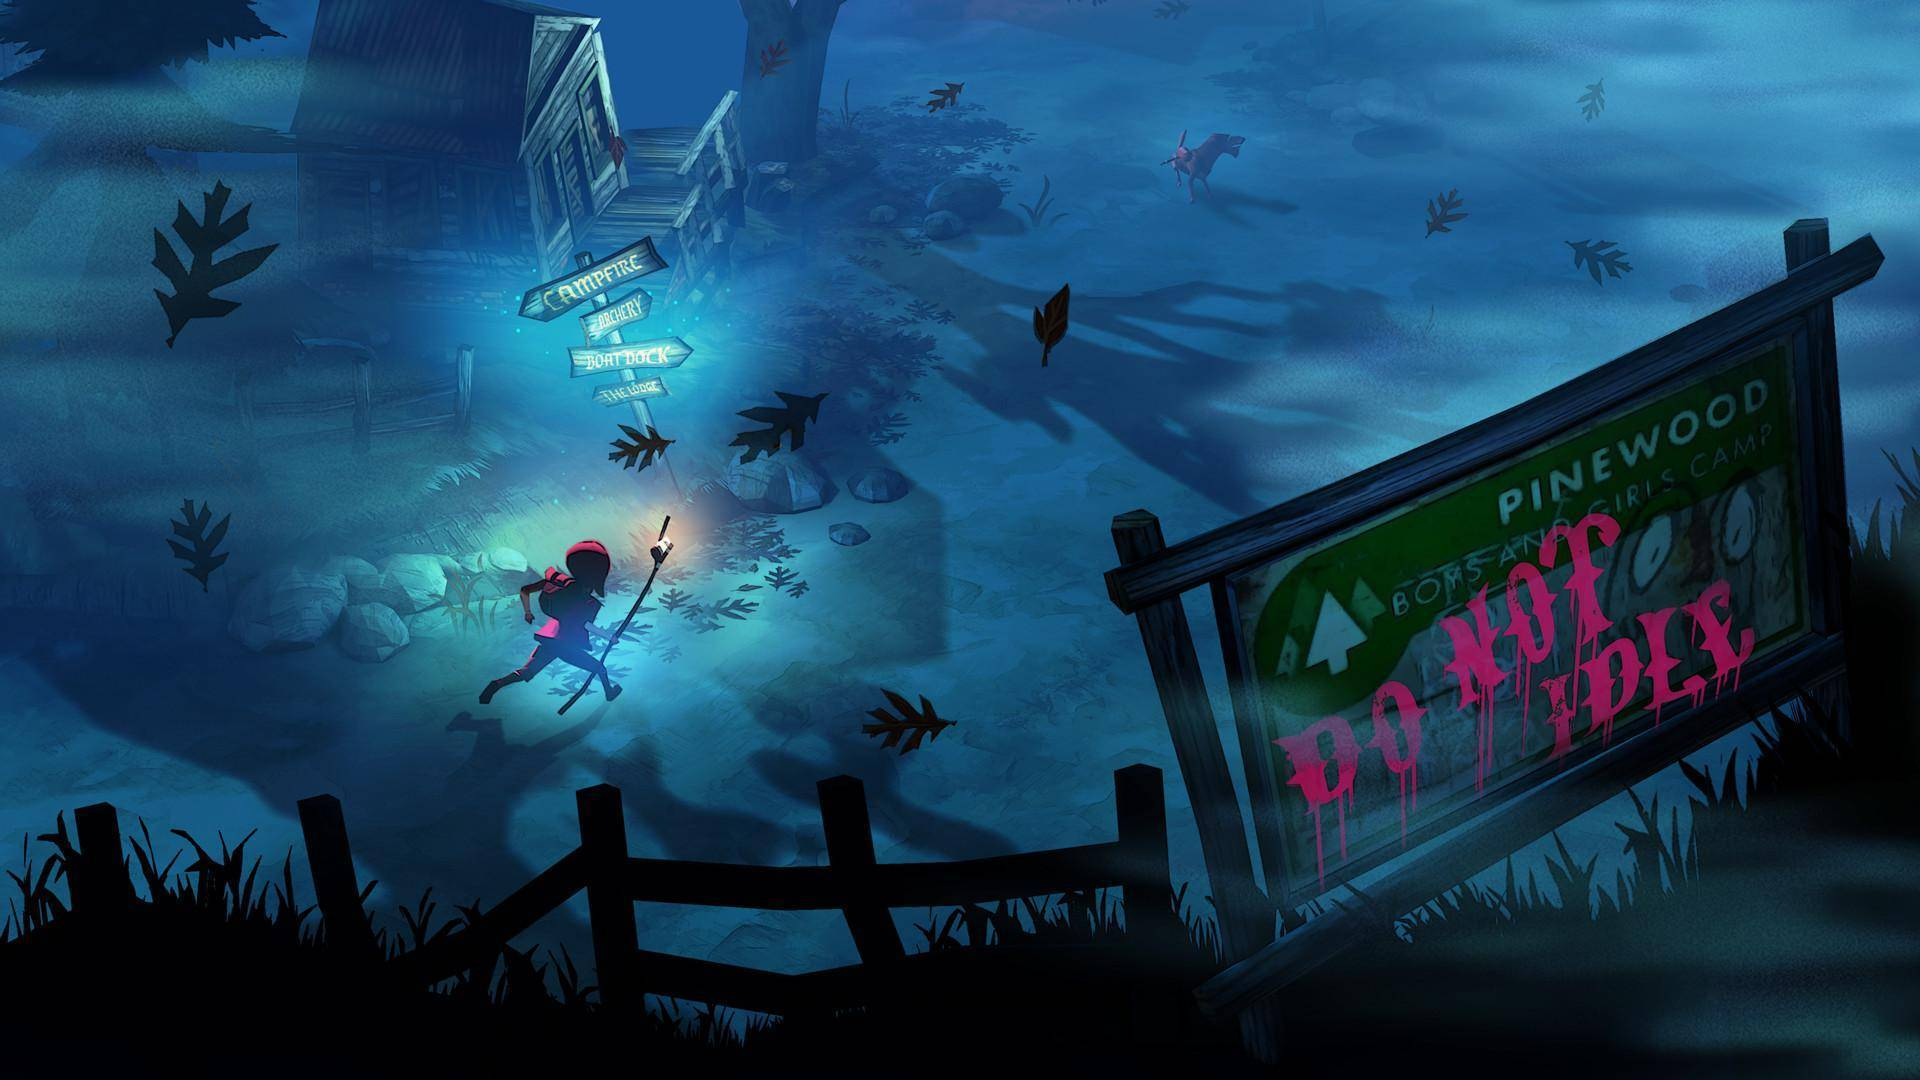 Titel des Artikels überThe Flame in the Flood